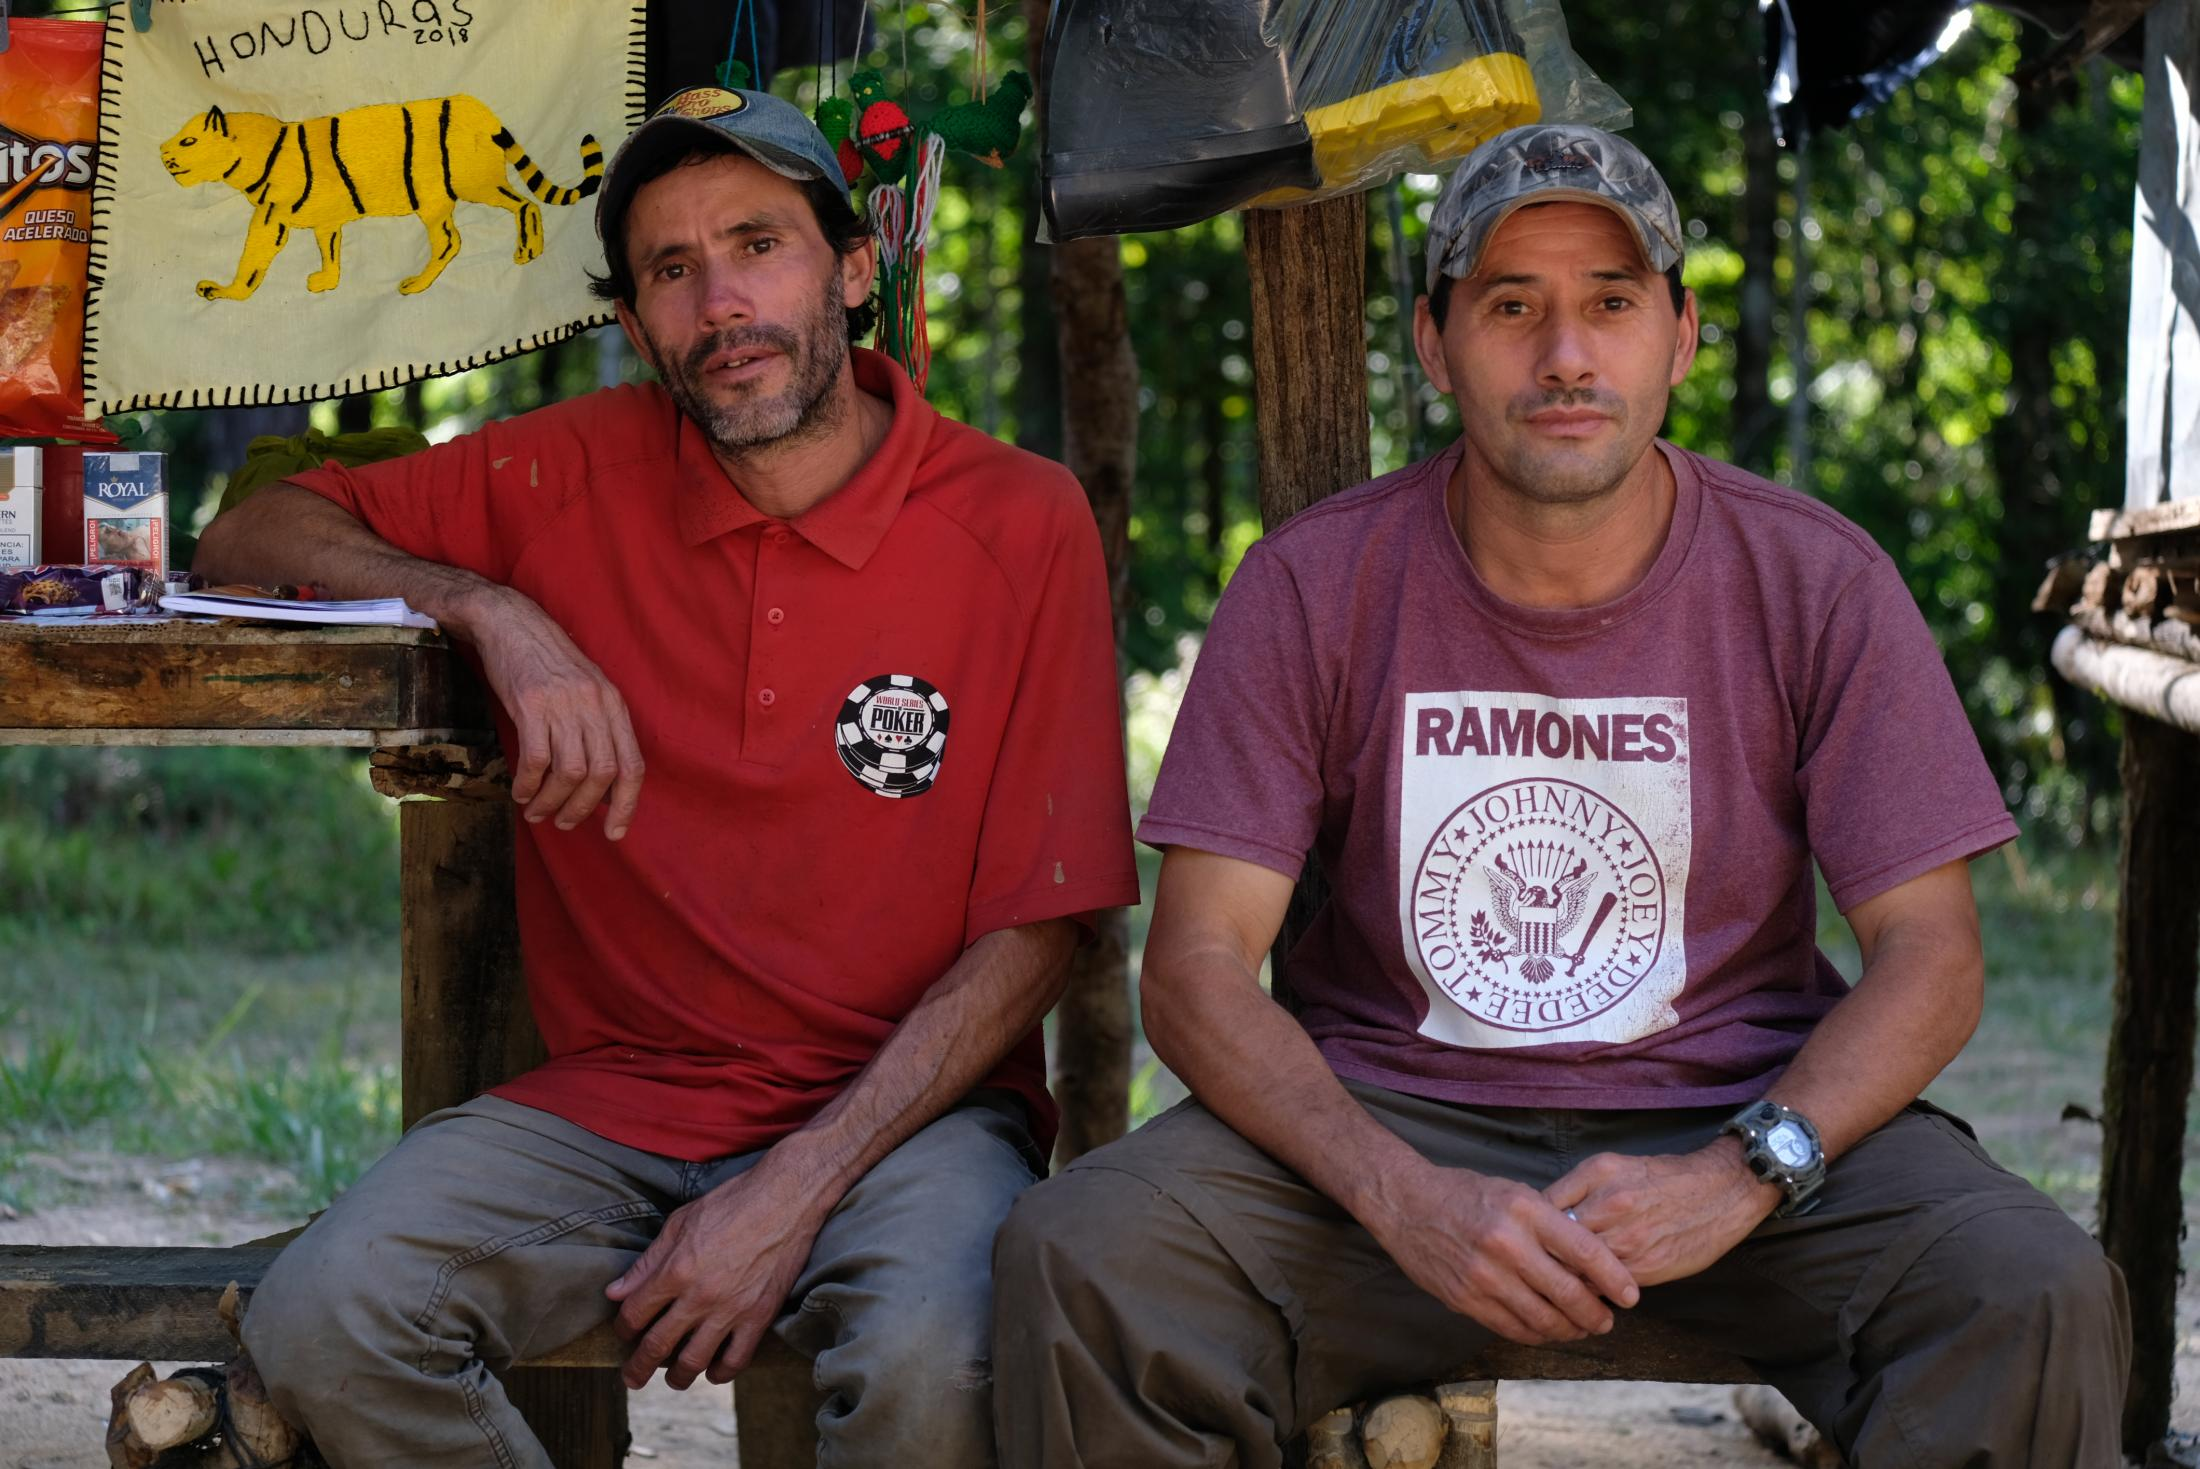 Brothers Reynaldo and Chito. They were one of many Hondurans hopeful of selling their products that ranged from Doritos bags, Cigarettes, rubber boots, to Organic Coffee. If you asked for a product, they would bring it to you within two days. I enjoyed talking to them about their life outside the camp. They both tried to cross to Mexico and the US, however, were caught by migration officers and sent back to Honduras. Both are coffee farmers, but they depend on earnings from the seasonal summer arrivals of scientists to the research camp.